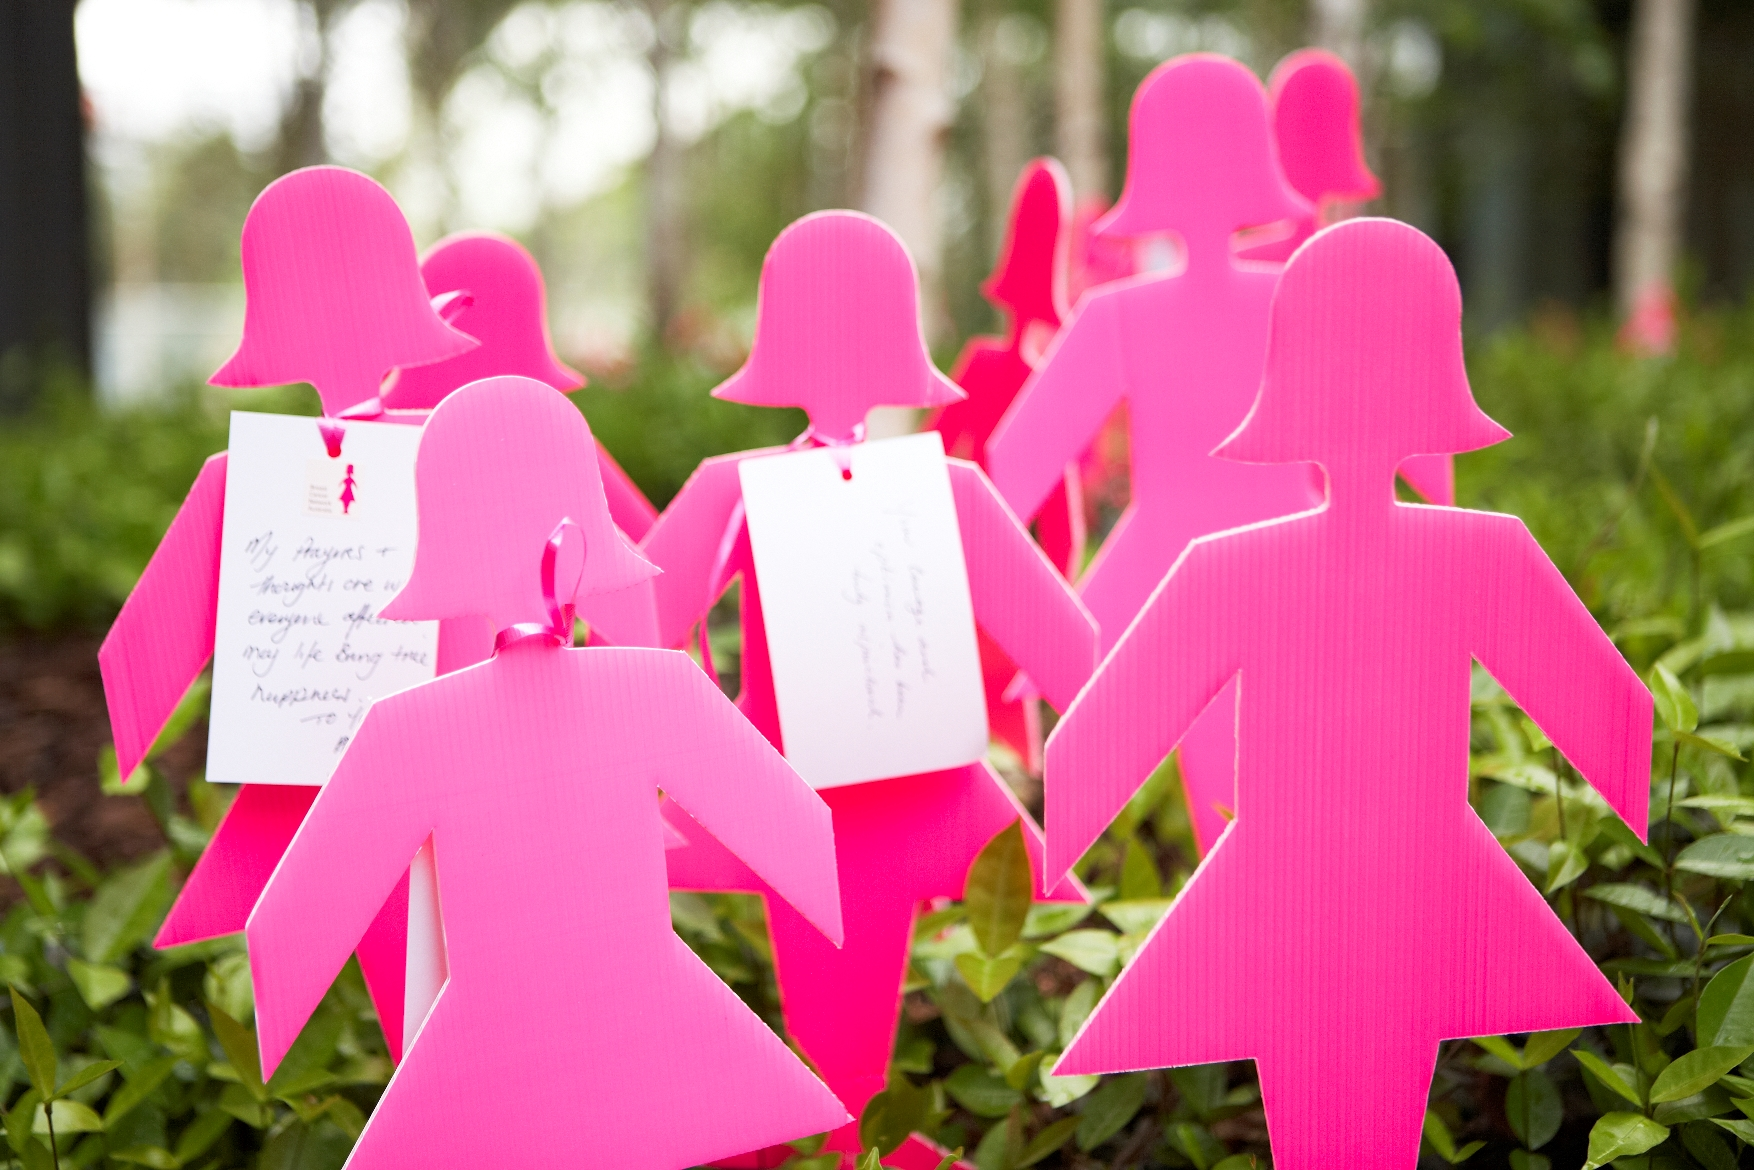 Breast Cancer Awareness Month: Let's THINK Pink